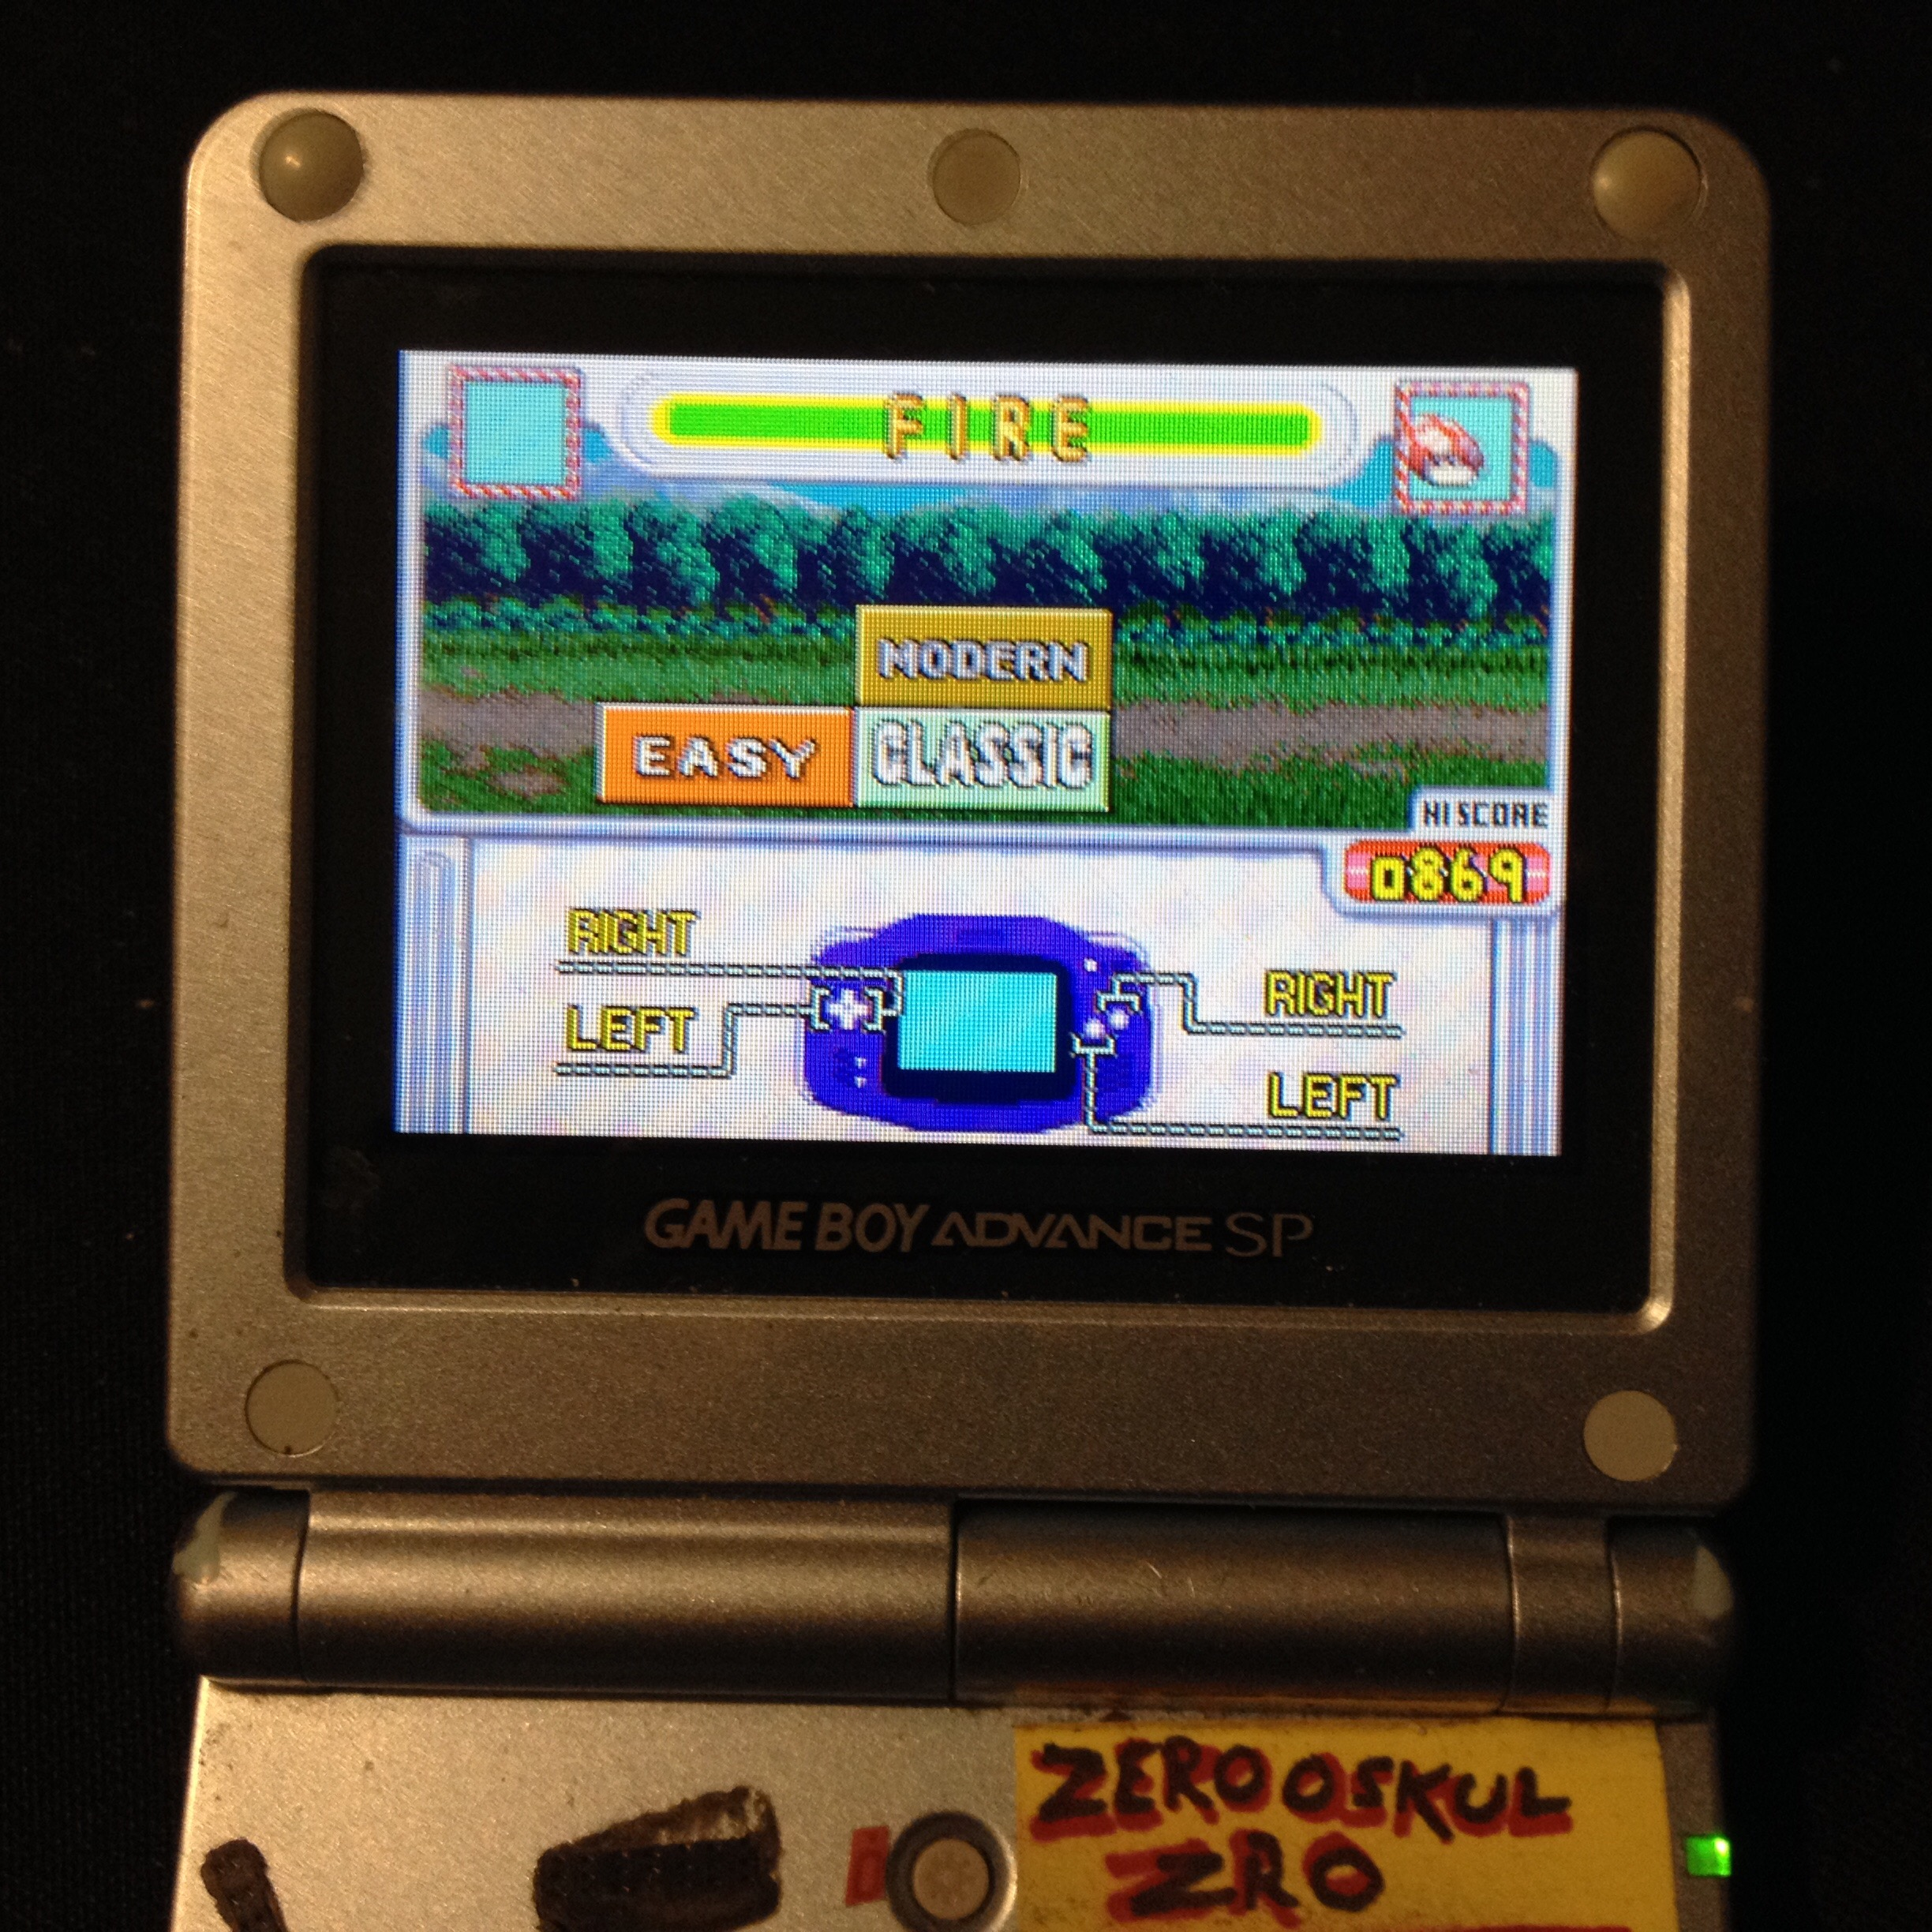 zerooskul: Game & Watch Gallery 4: Fire [Classic: Easy] (GBA) 869 points on 2019-12-14 23:39:54